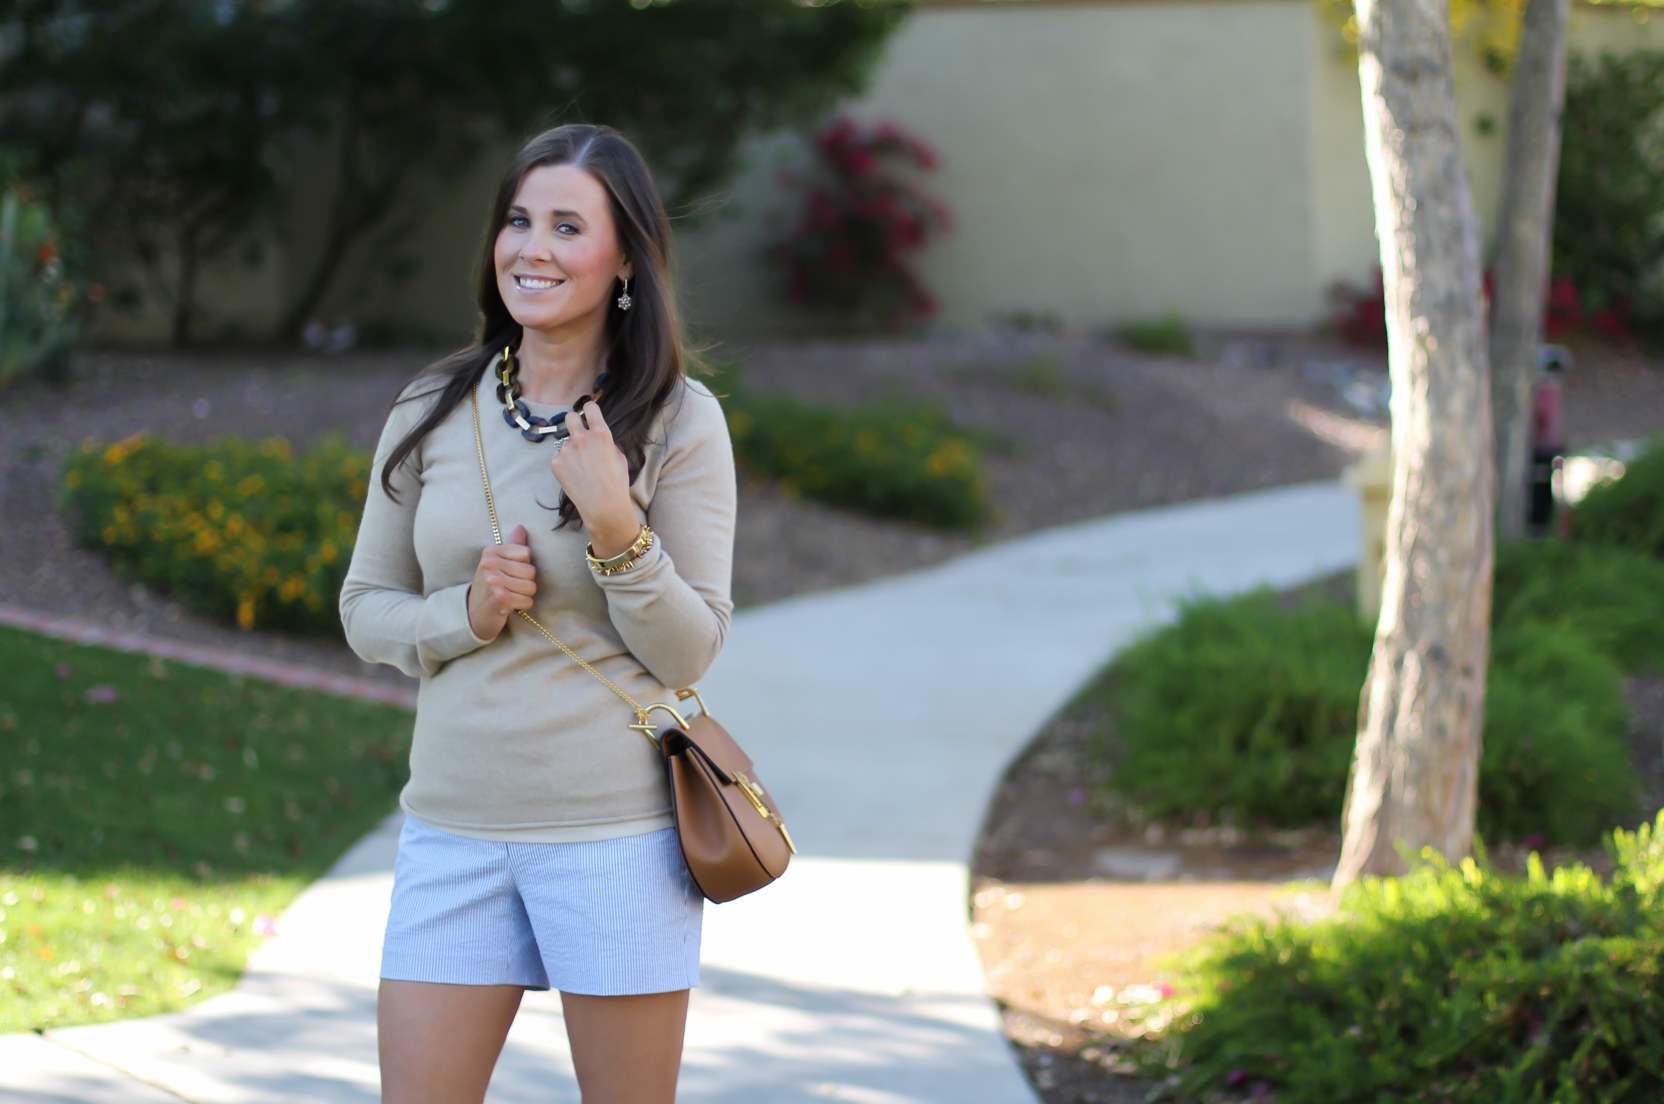 Seersucker Shorts, Tan Cashmere Sweater, Tan Leather Ankle Strap Heels, Tan Leather Chain Strap Bag, Ann Taylor, J.Crew, Steve Madden, Chloe  5